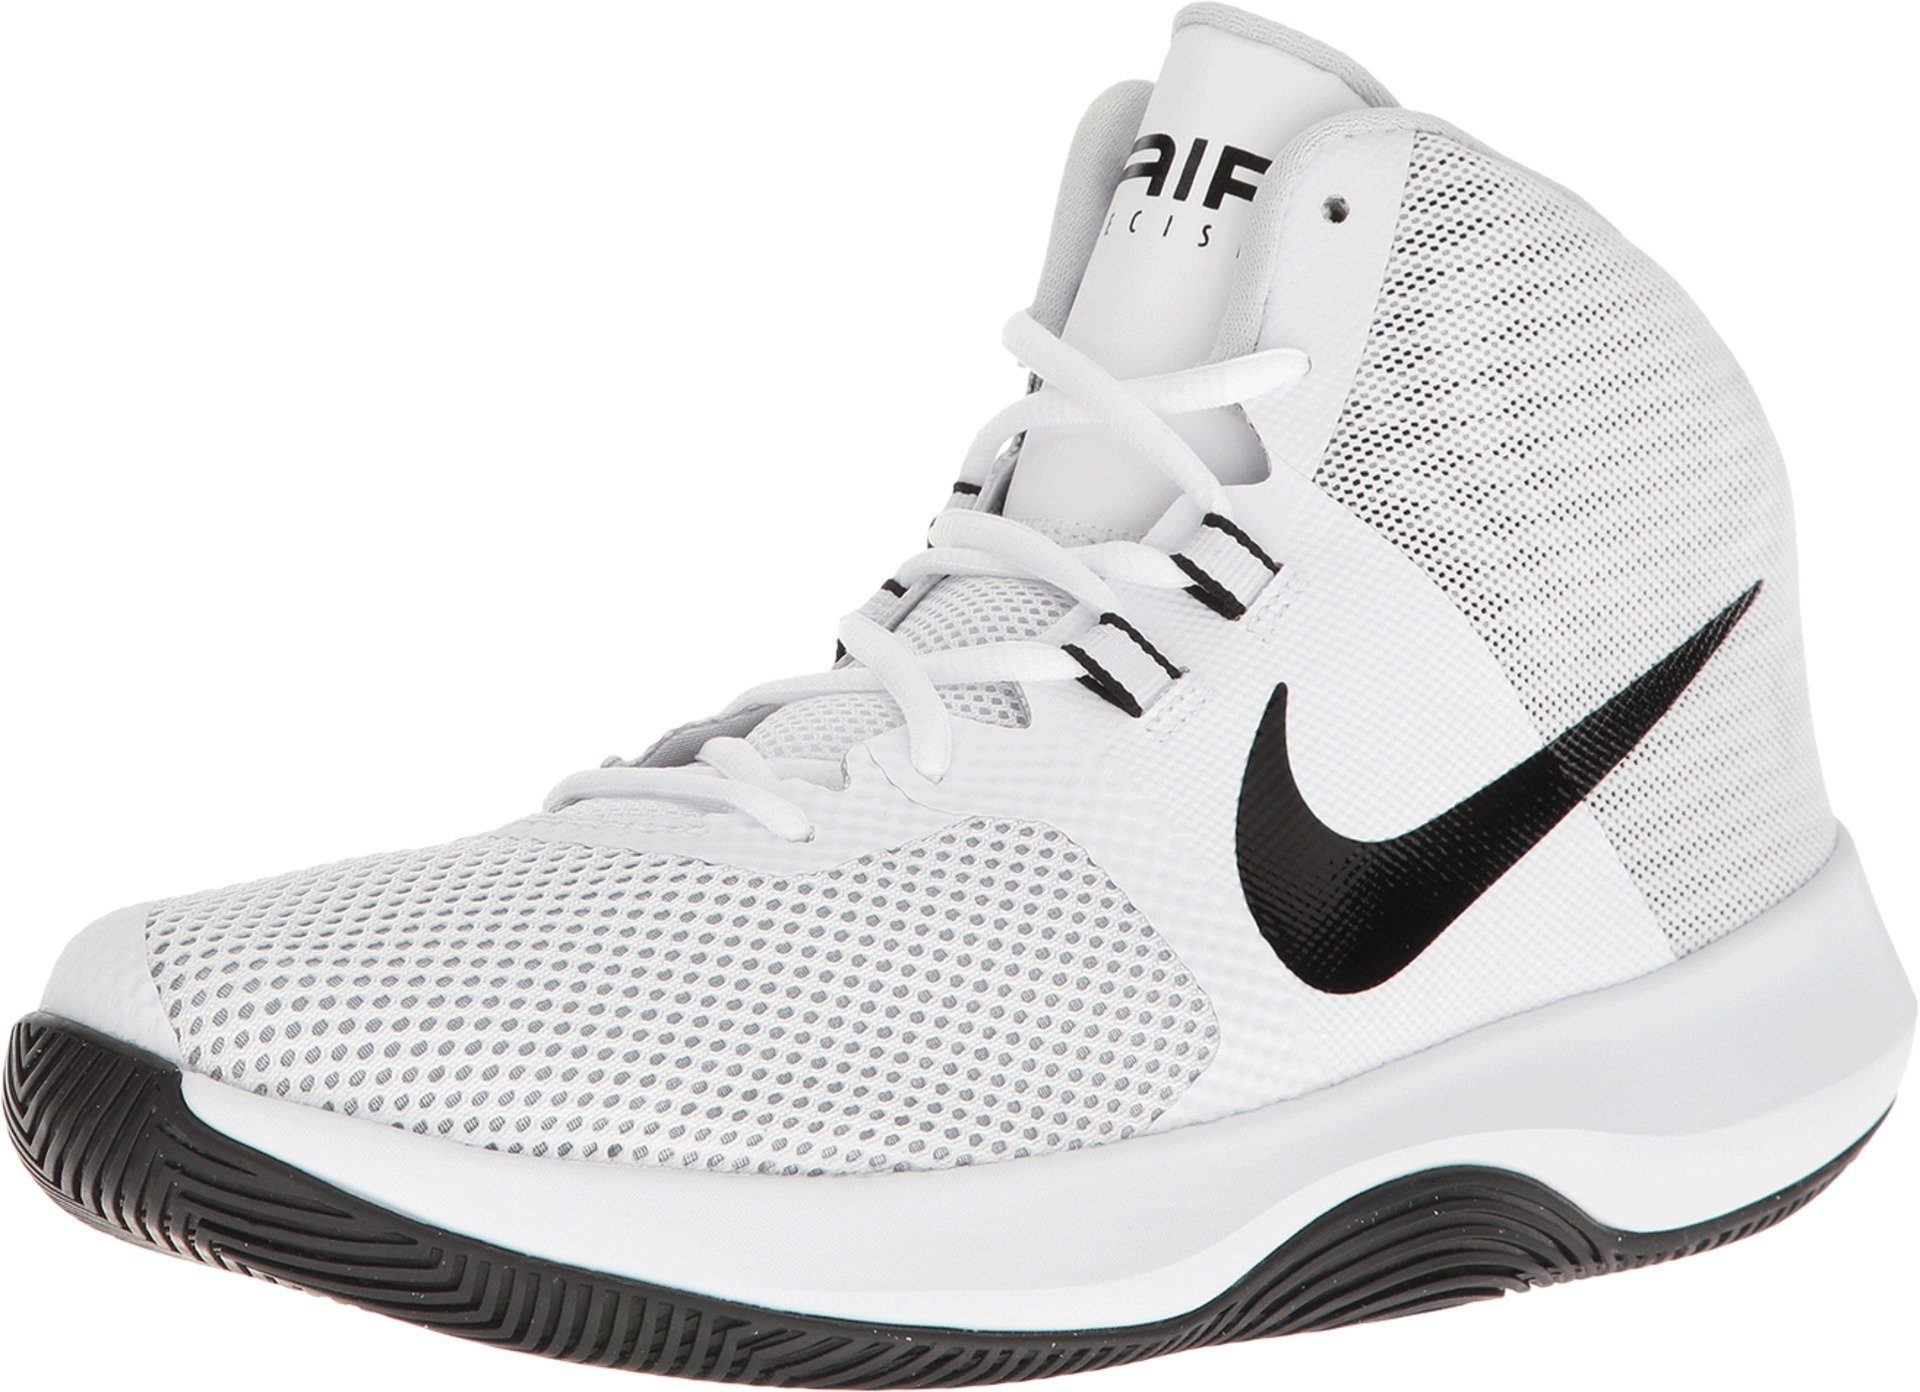 Nike Men's Air Precision Basketball Shoes, White, Size 7